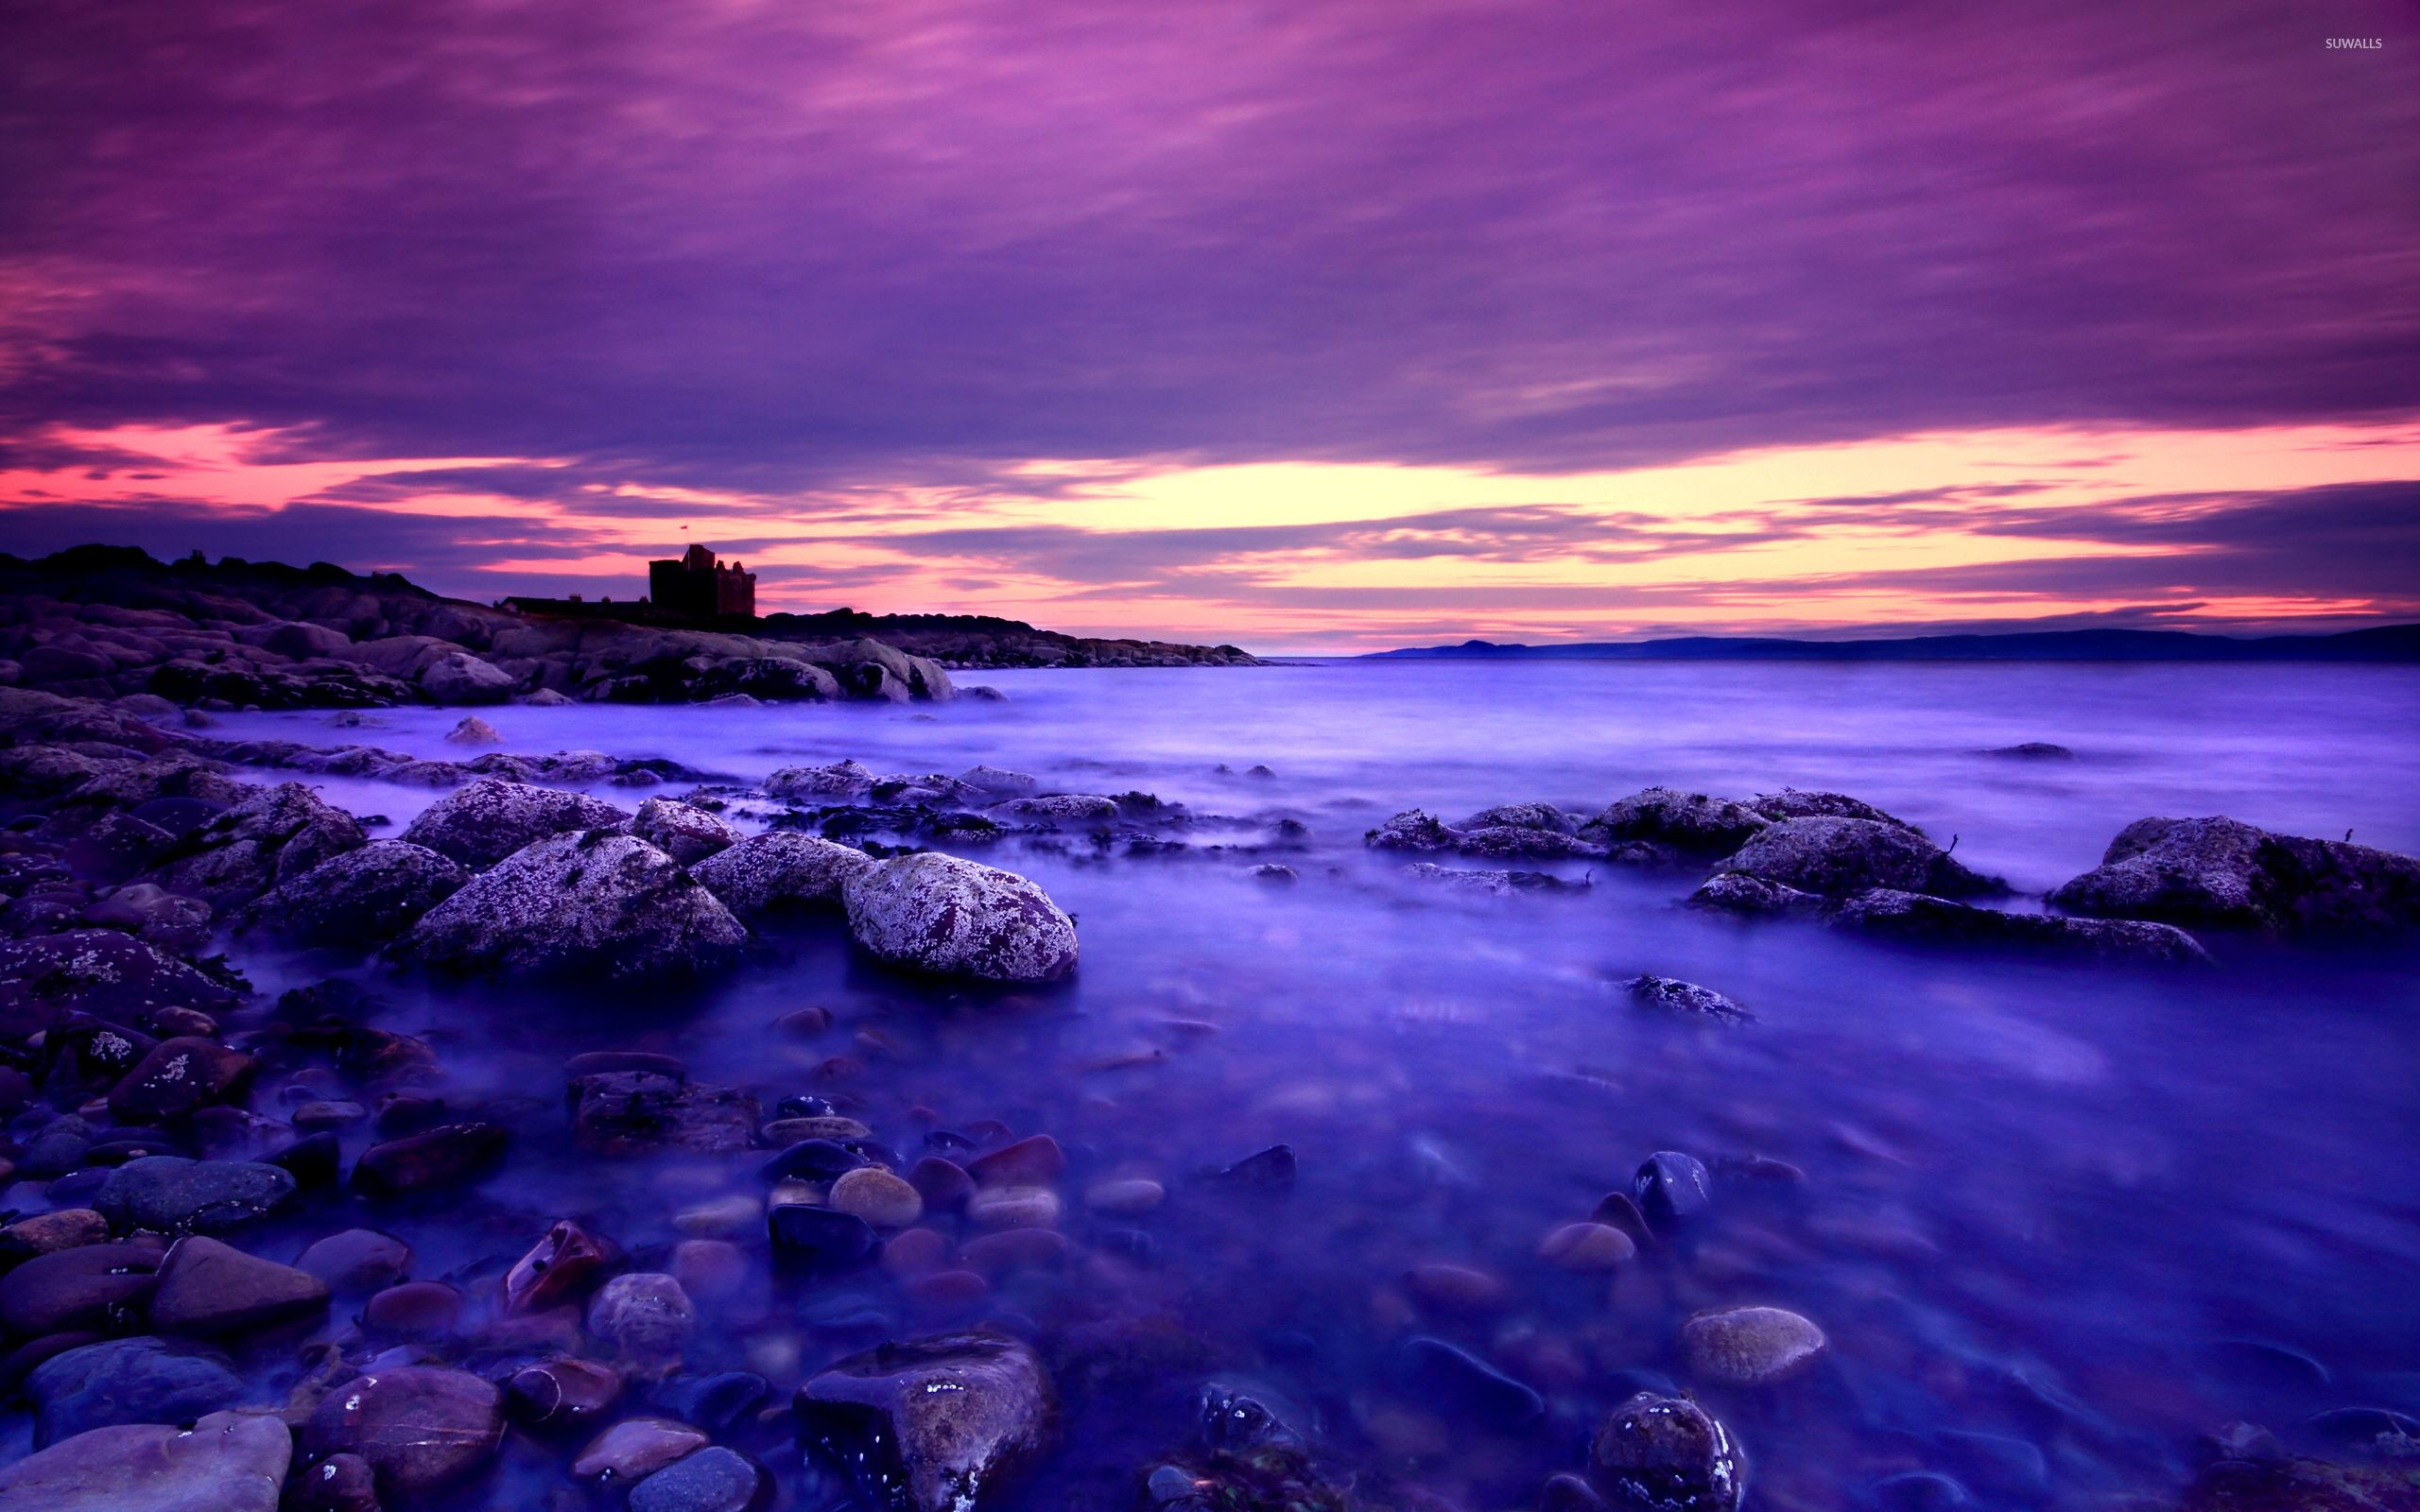 Purple Scenery Wallpaper 61 Images